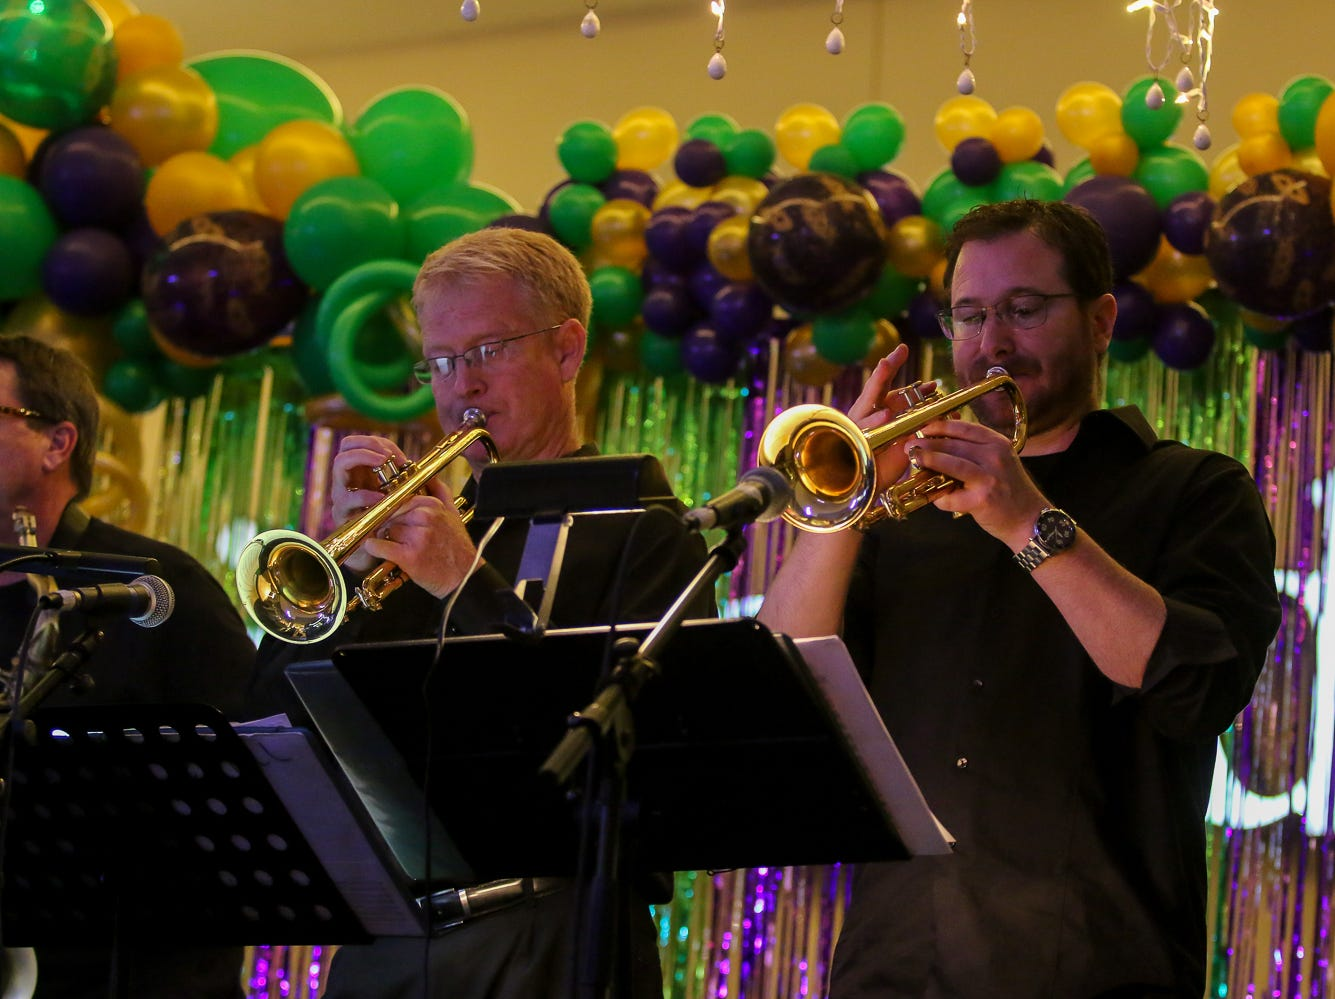 The Reunion Band performs during the 24th annual Cordova Mall Ball on Saturday, January 26, 2019. The event raises money for The Studer Family Children's Hospital at Sacred Heart.